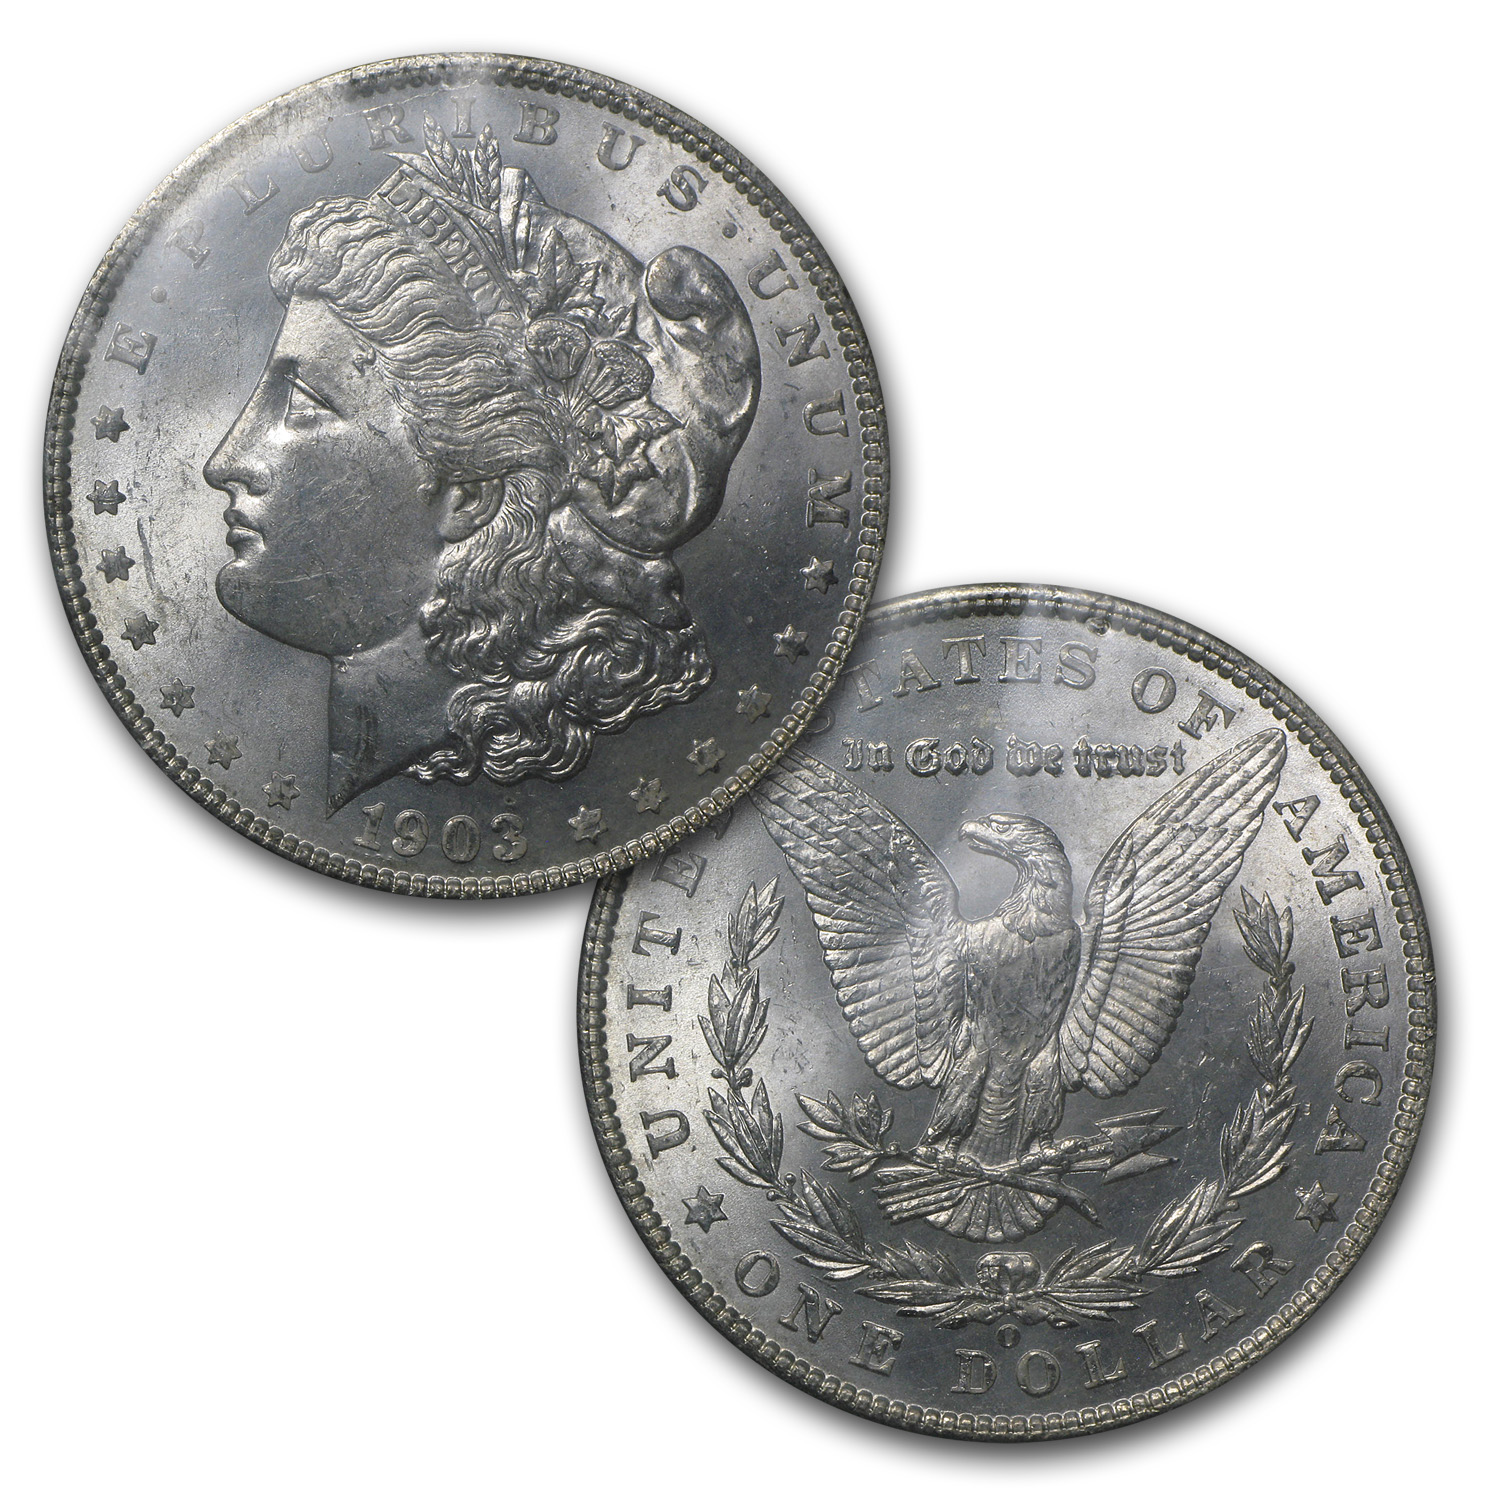 1903-O Morgan Dollar (GSA Certified, Soft Pack)